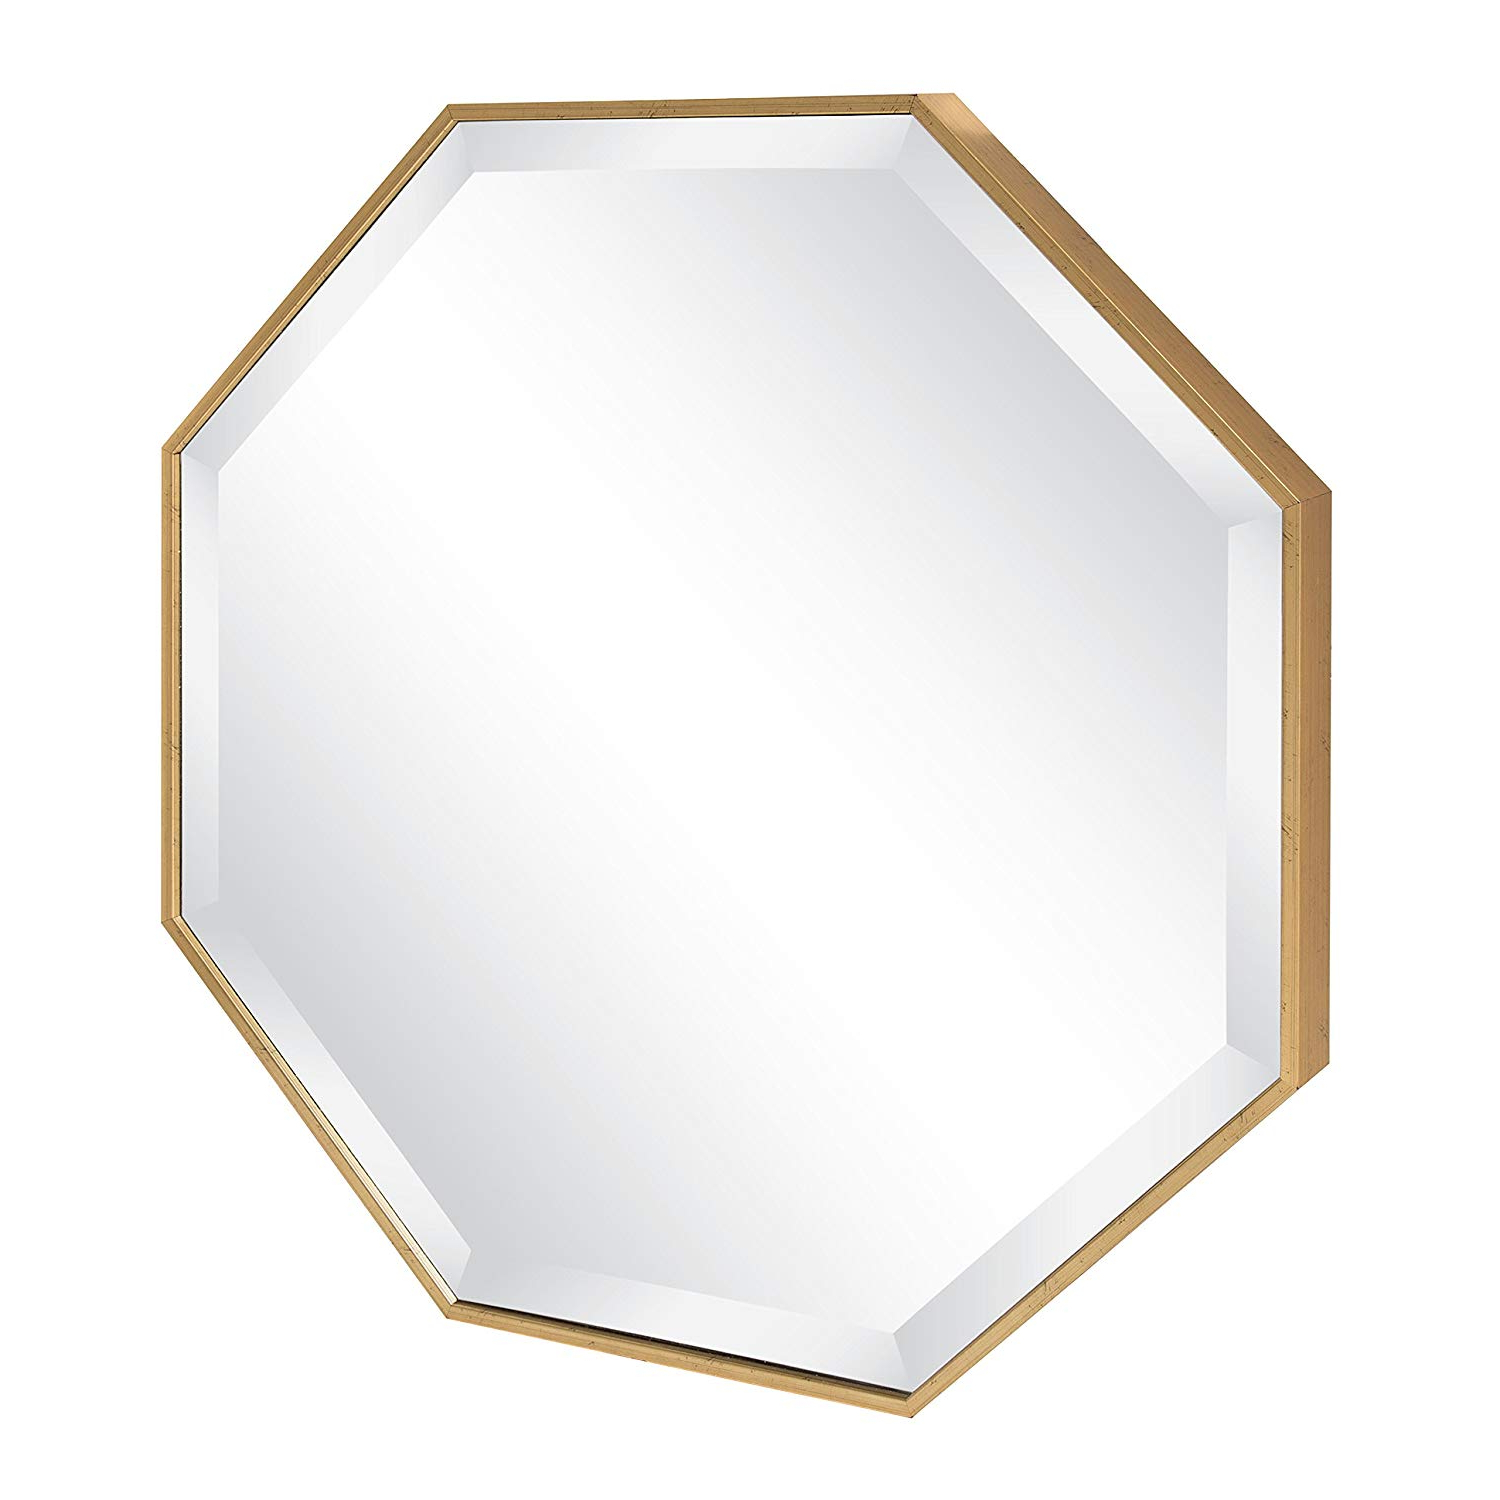 Octagon Wall Mirrors With Regard To Newest Kate And Laurel Rhodes Octagon Framed Wall Mirror, 24.75x (View 4 of 20)